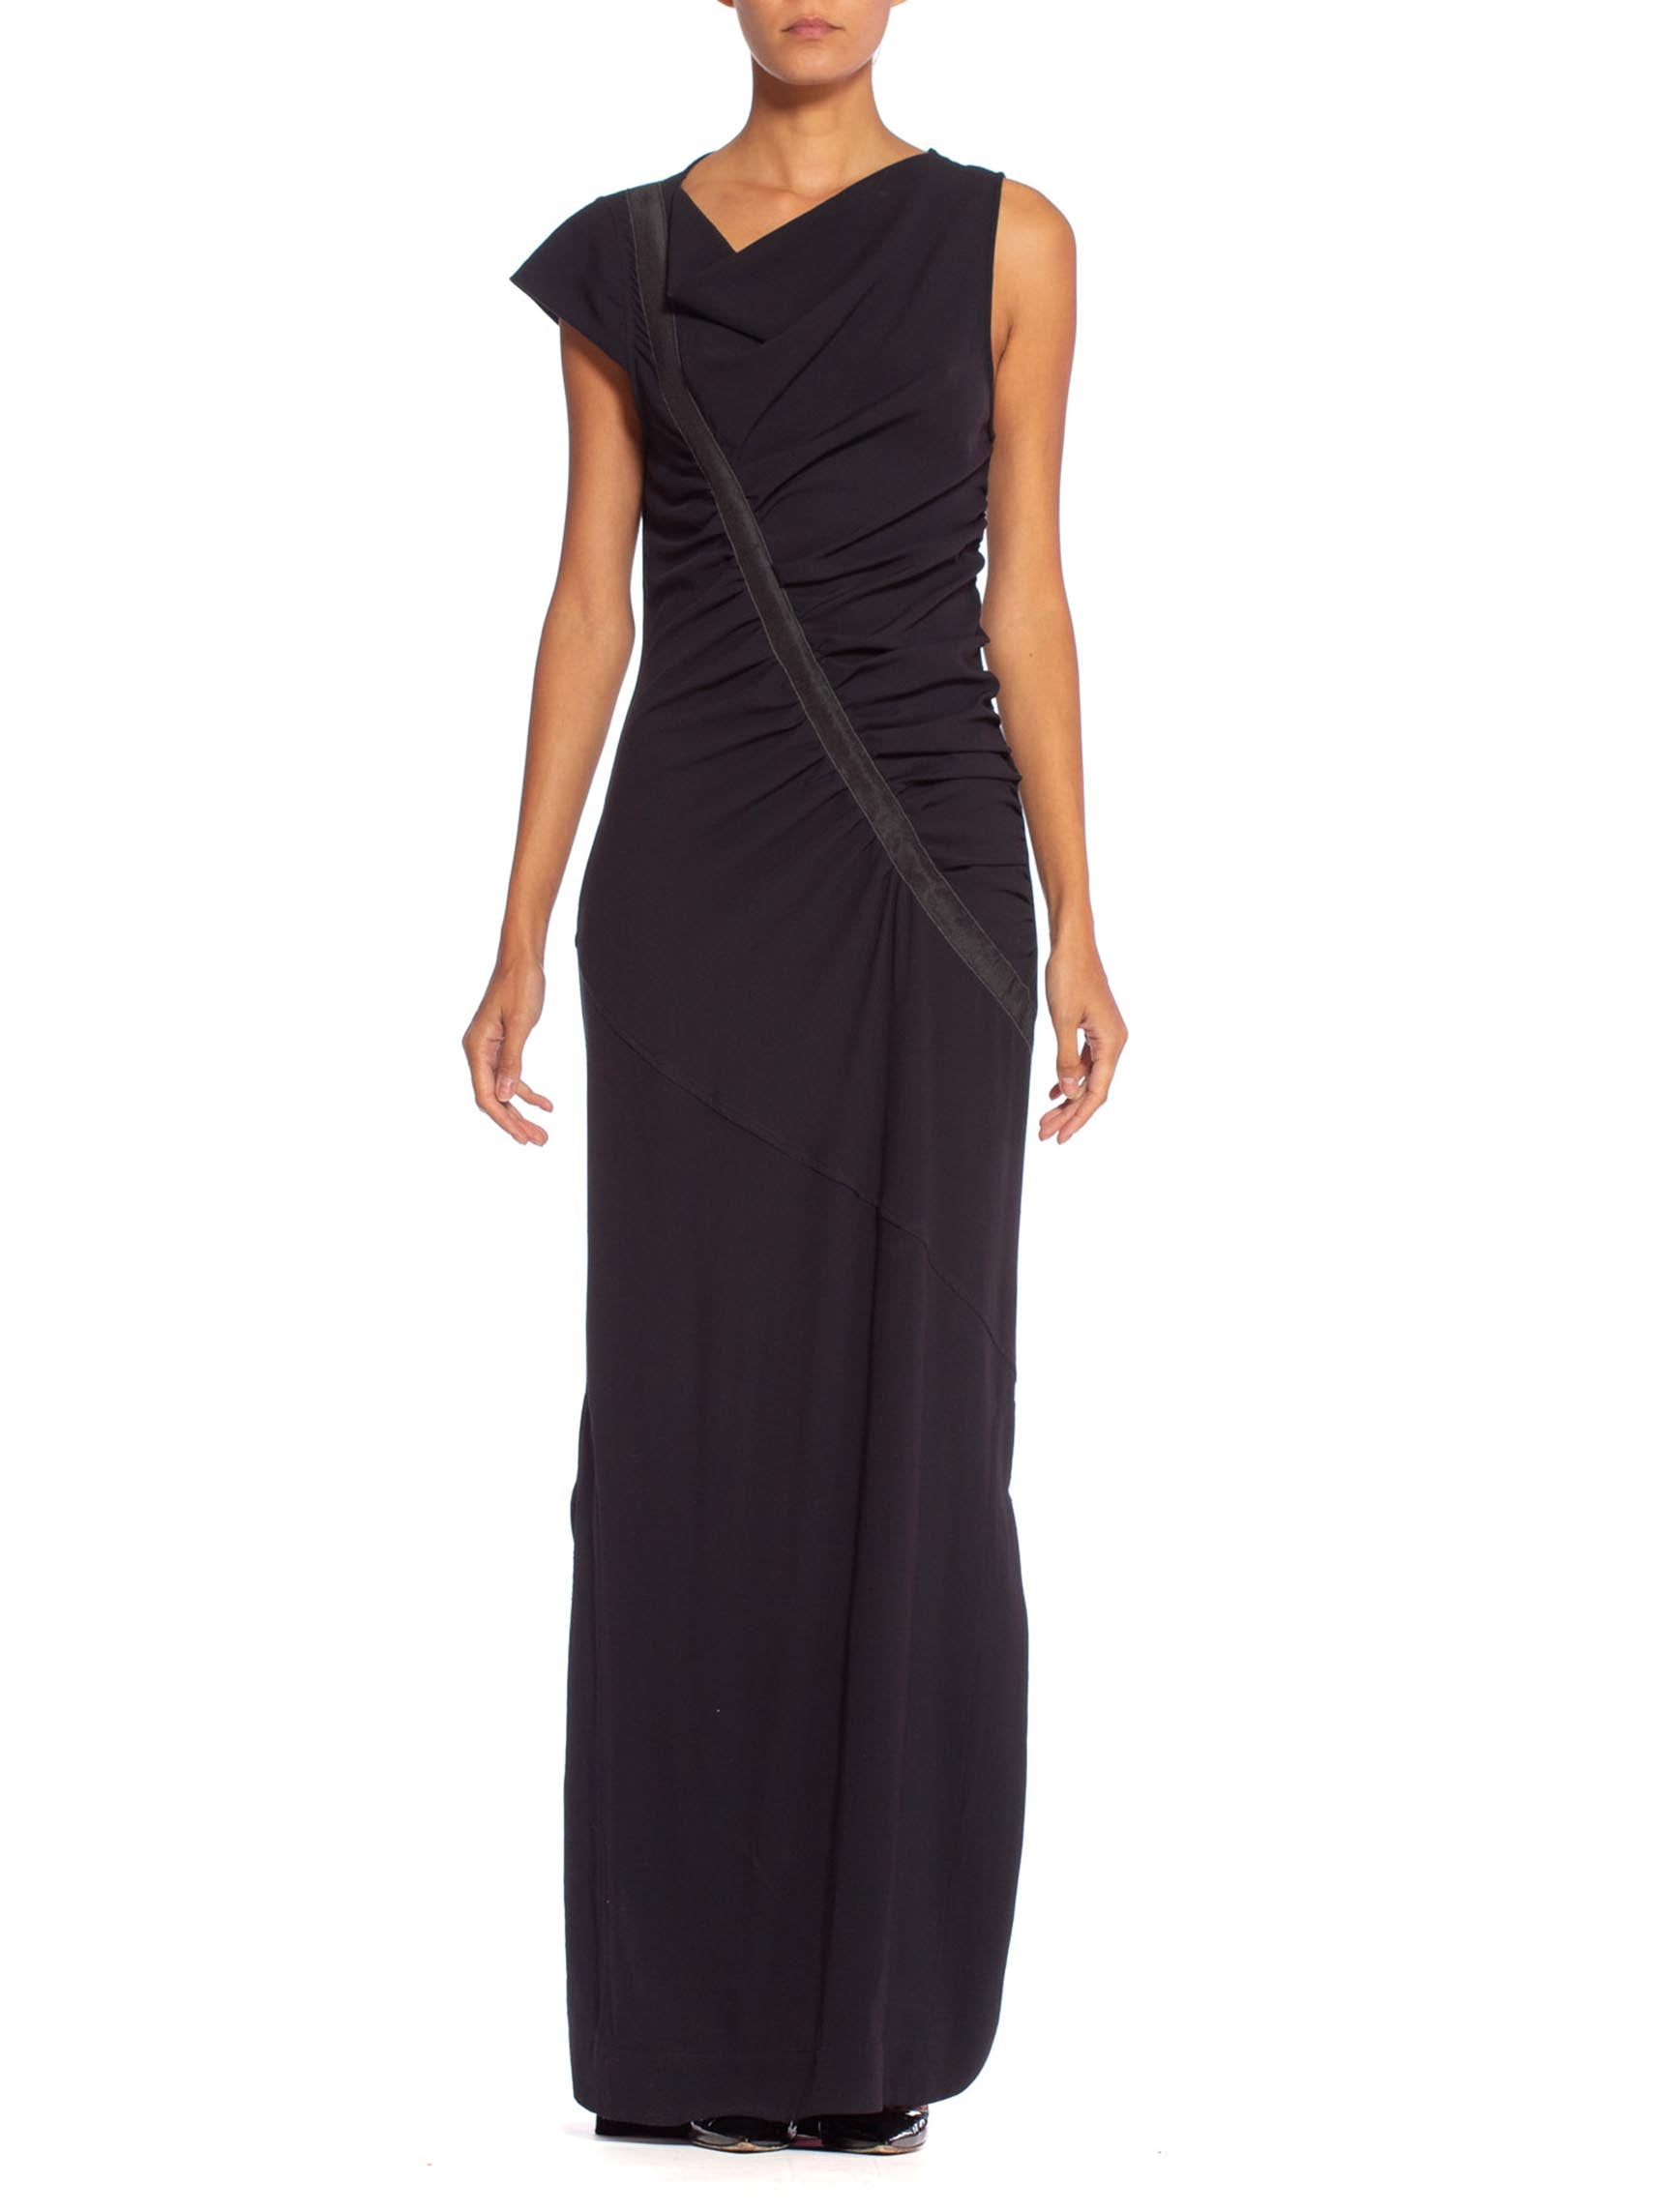 1990's Asymmetrical Draped Jersey Body-Con Dress